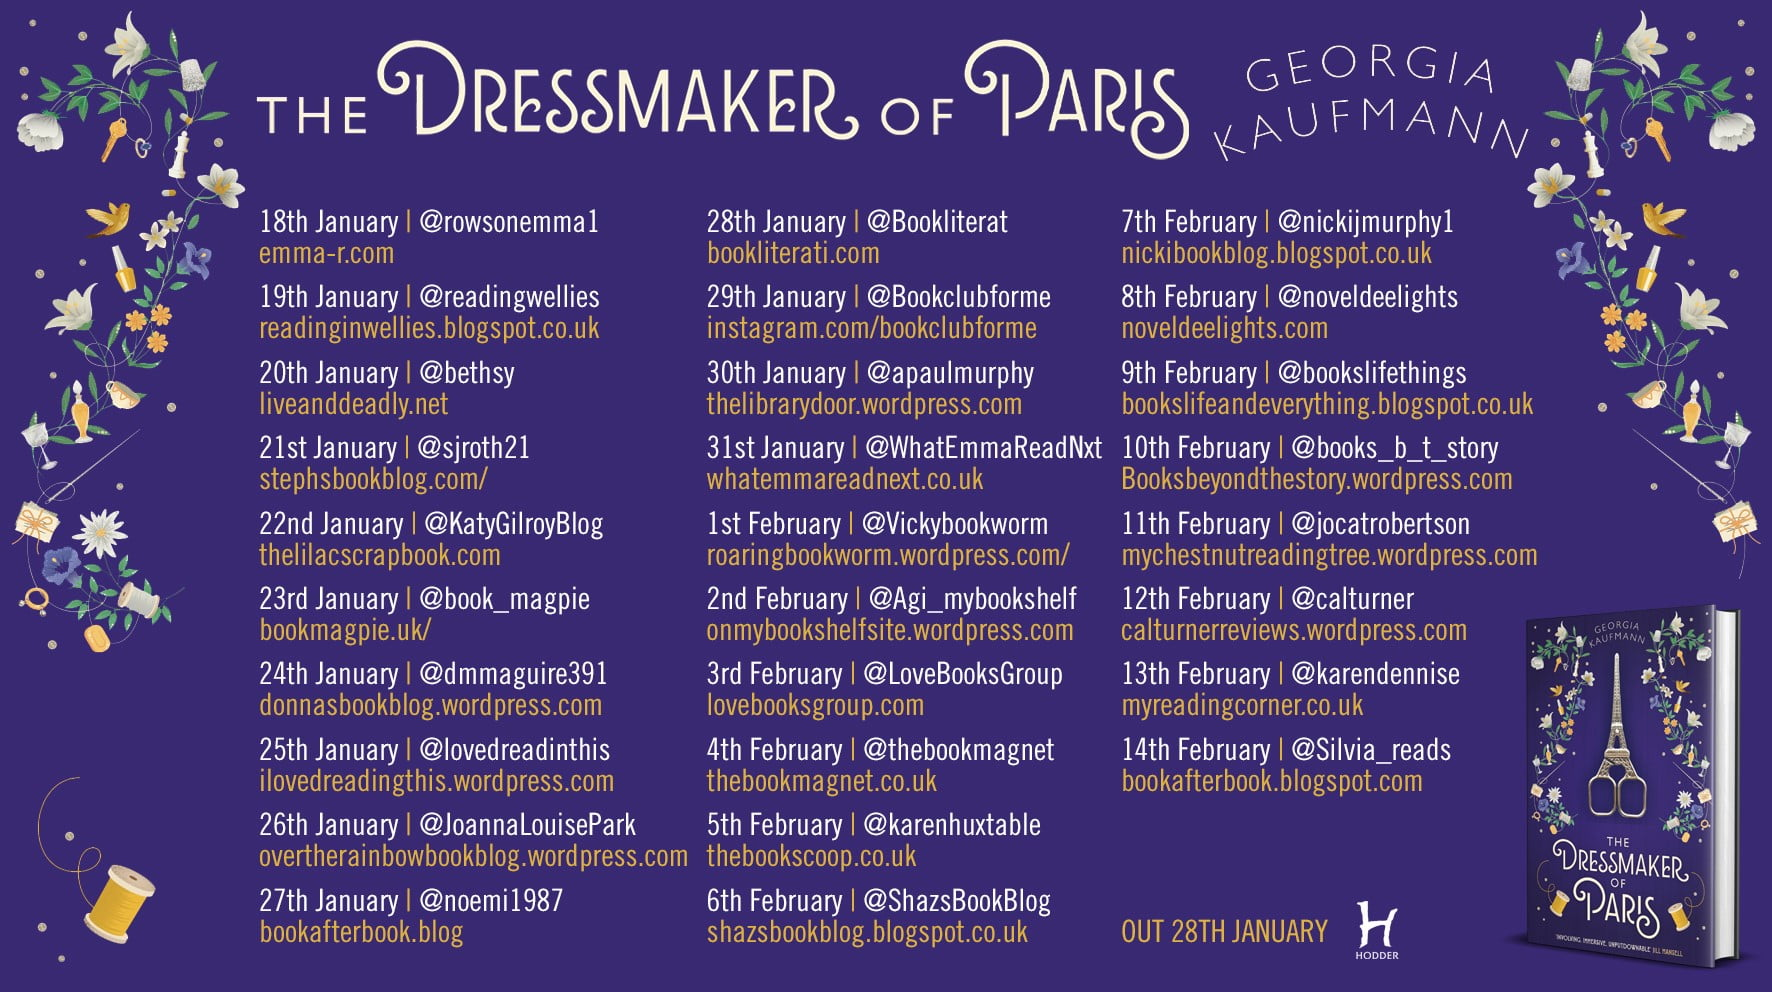 The Dressmaker of Paris – Georgia Kaufmann